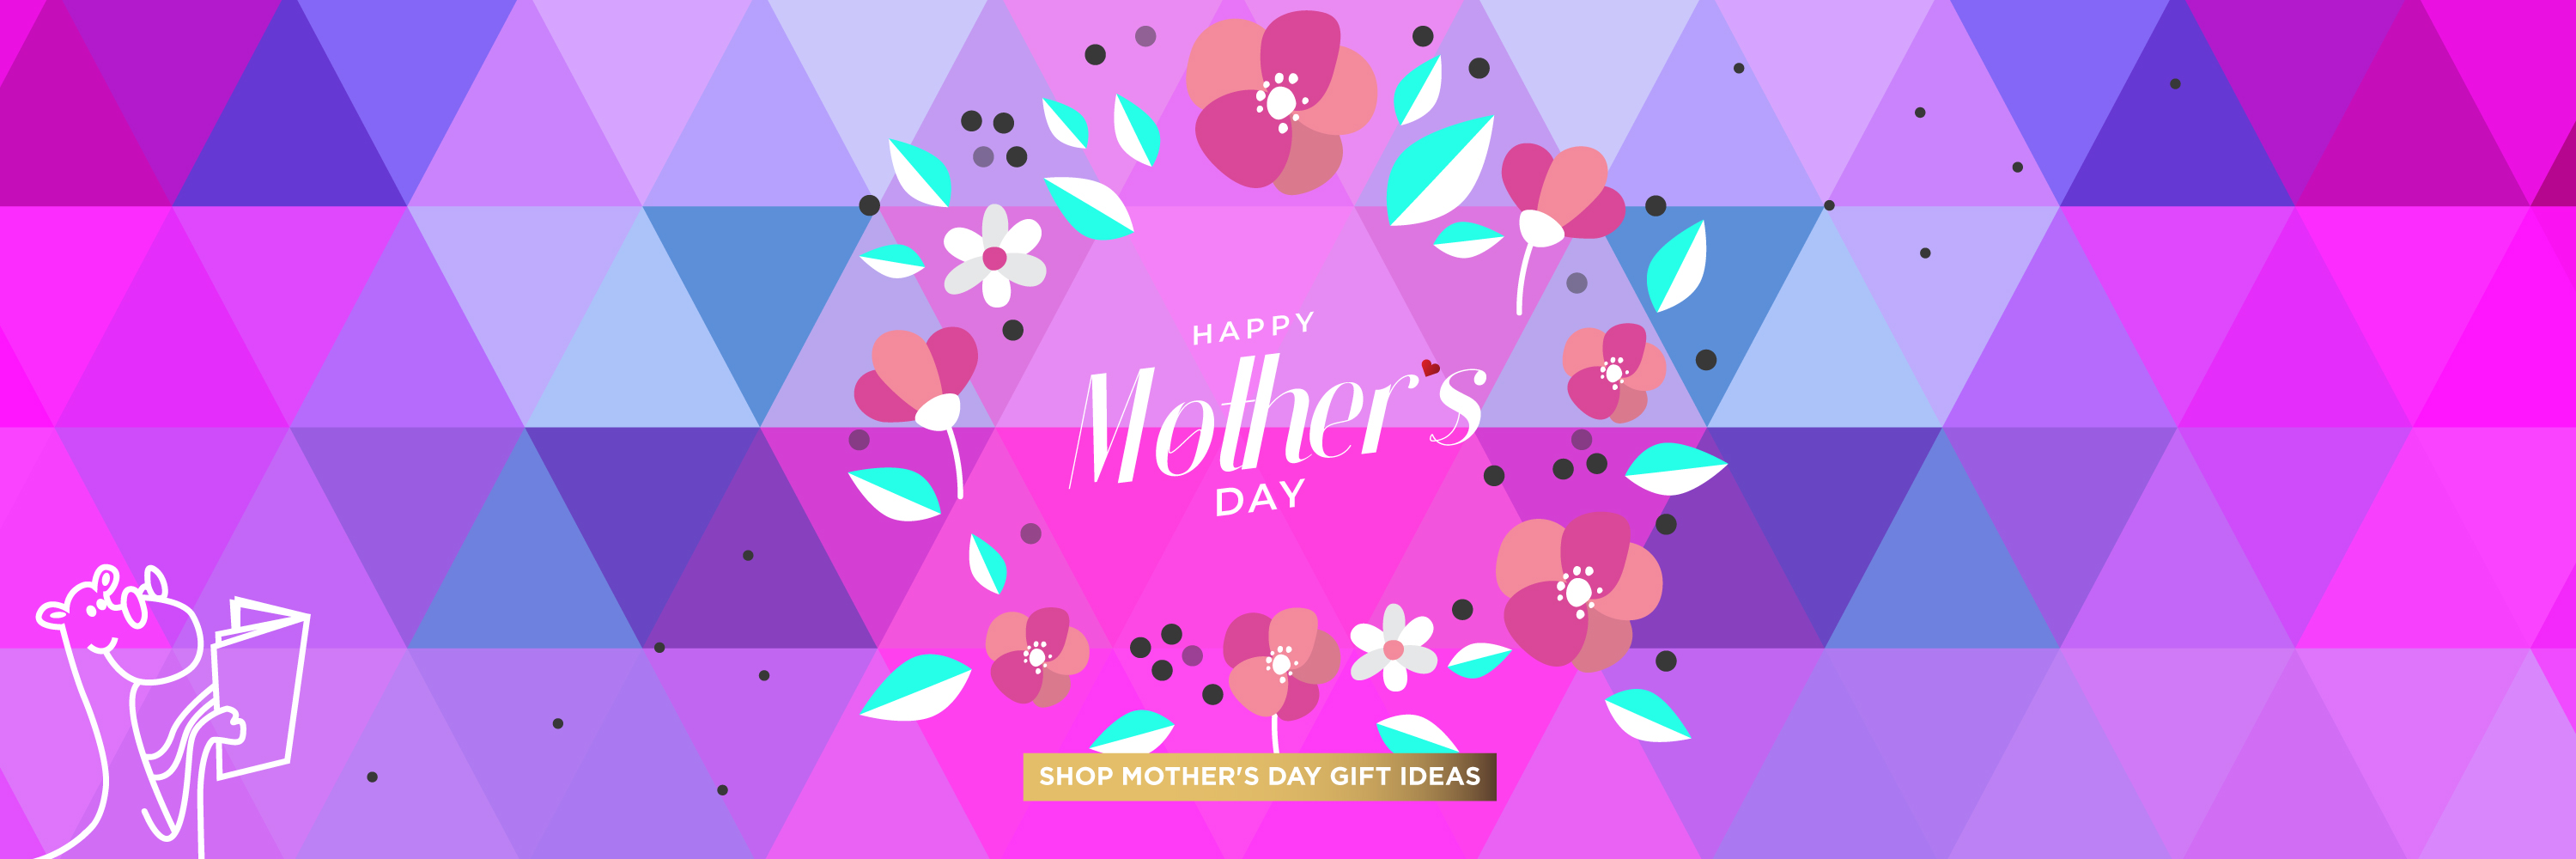 Mothers Day 19 Homepage Banner 3000x1000